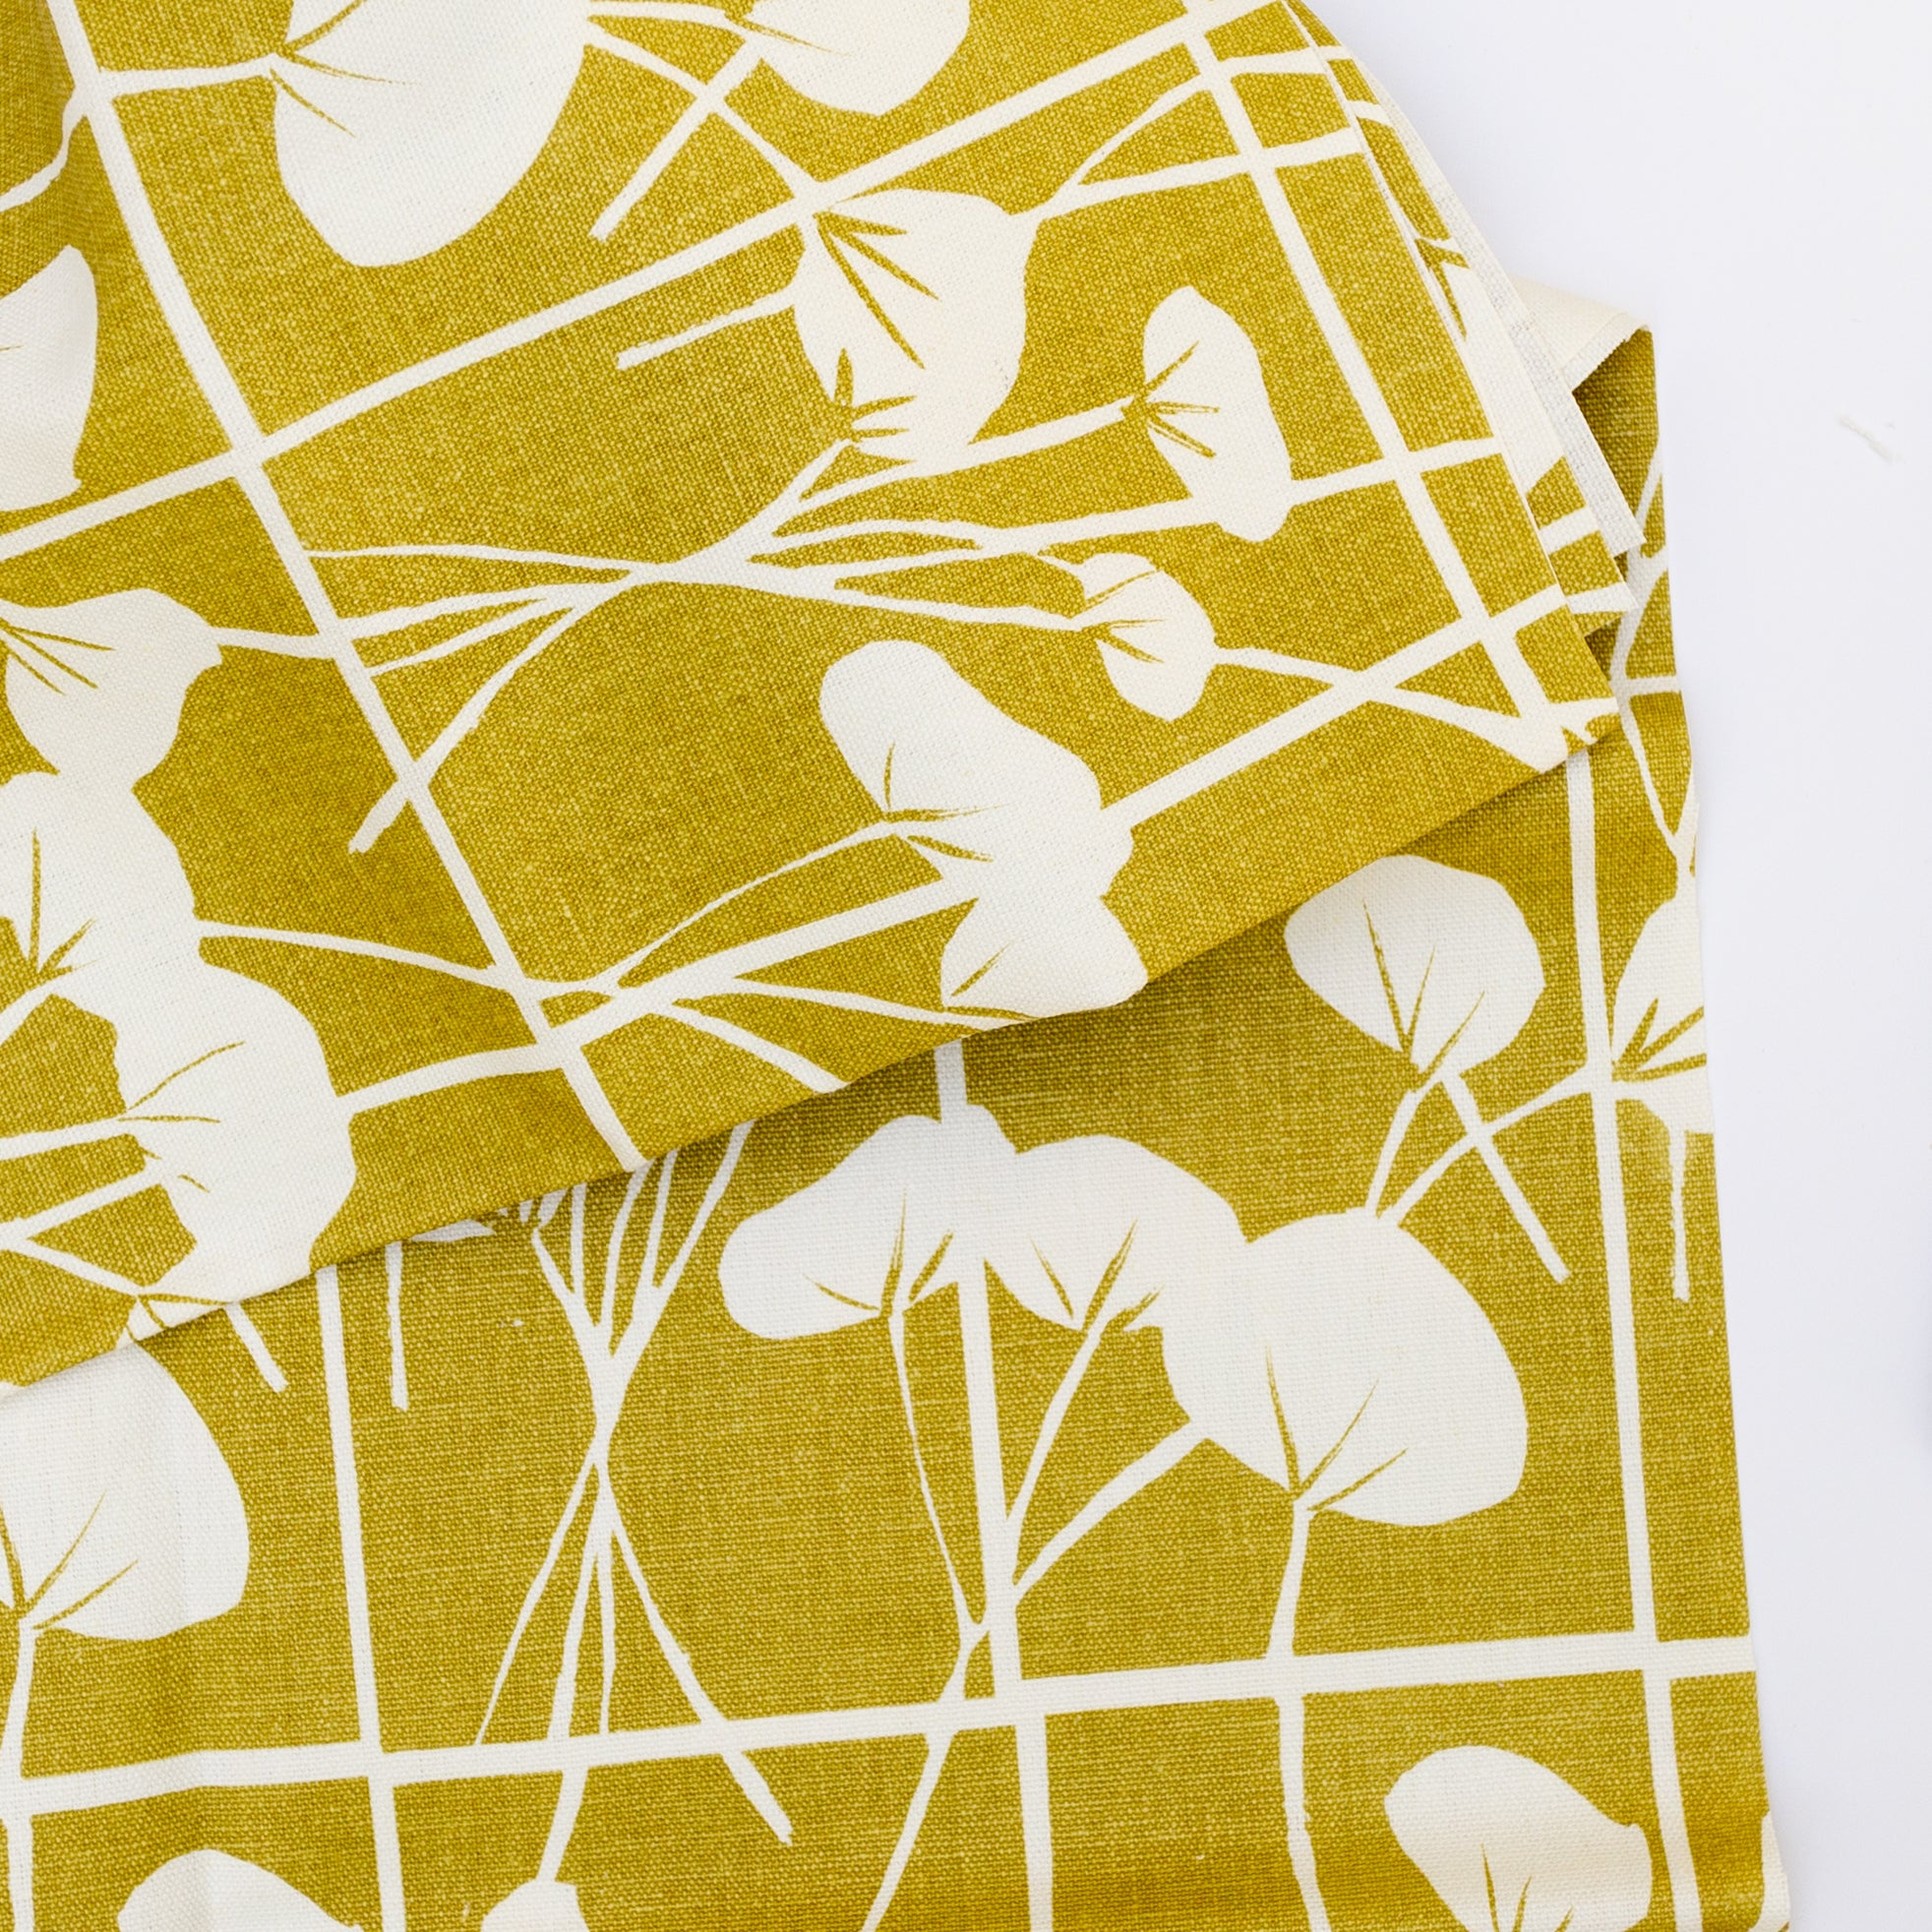 Screen printed fabric yardage with cotton